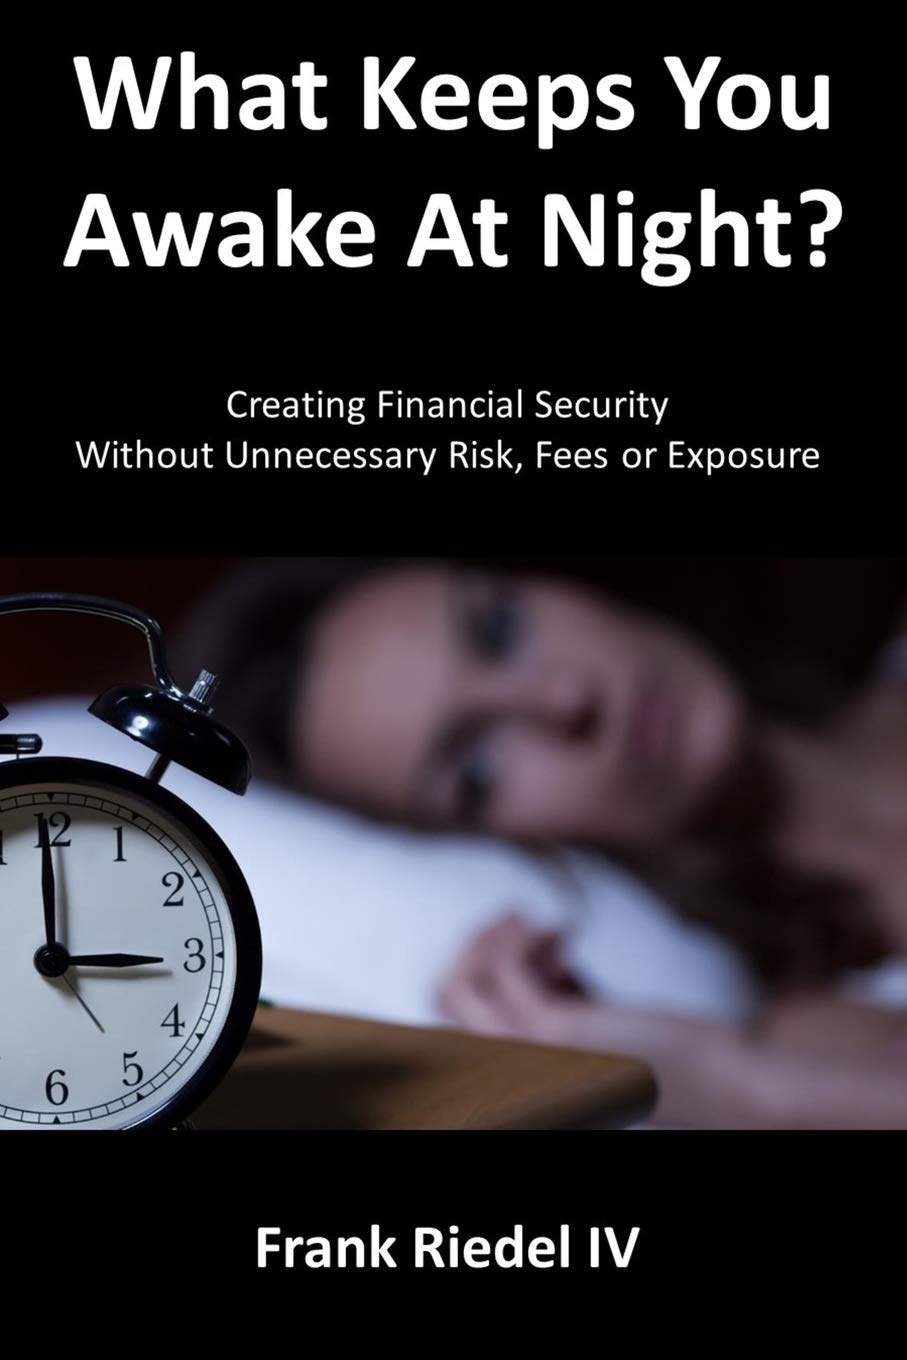 Creating Financial Security- Without Unnecessary Risk, Fees or Exposure